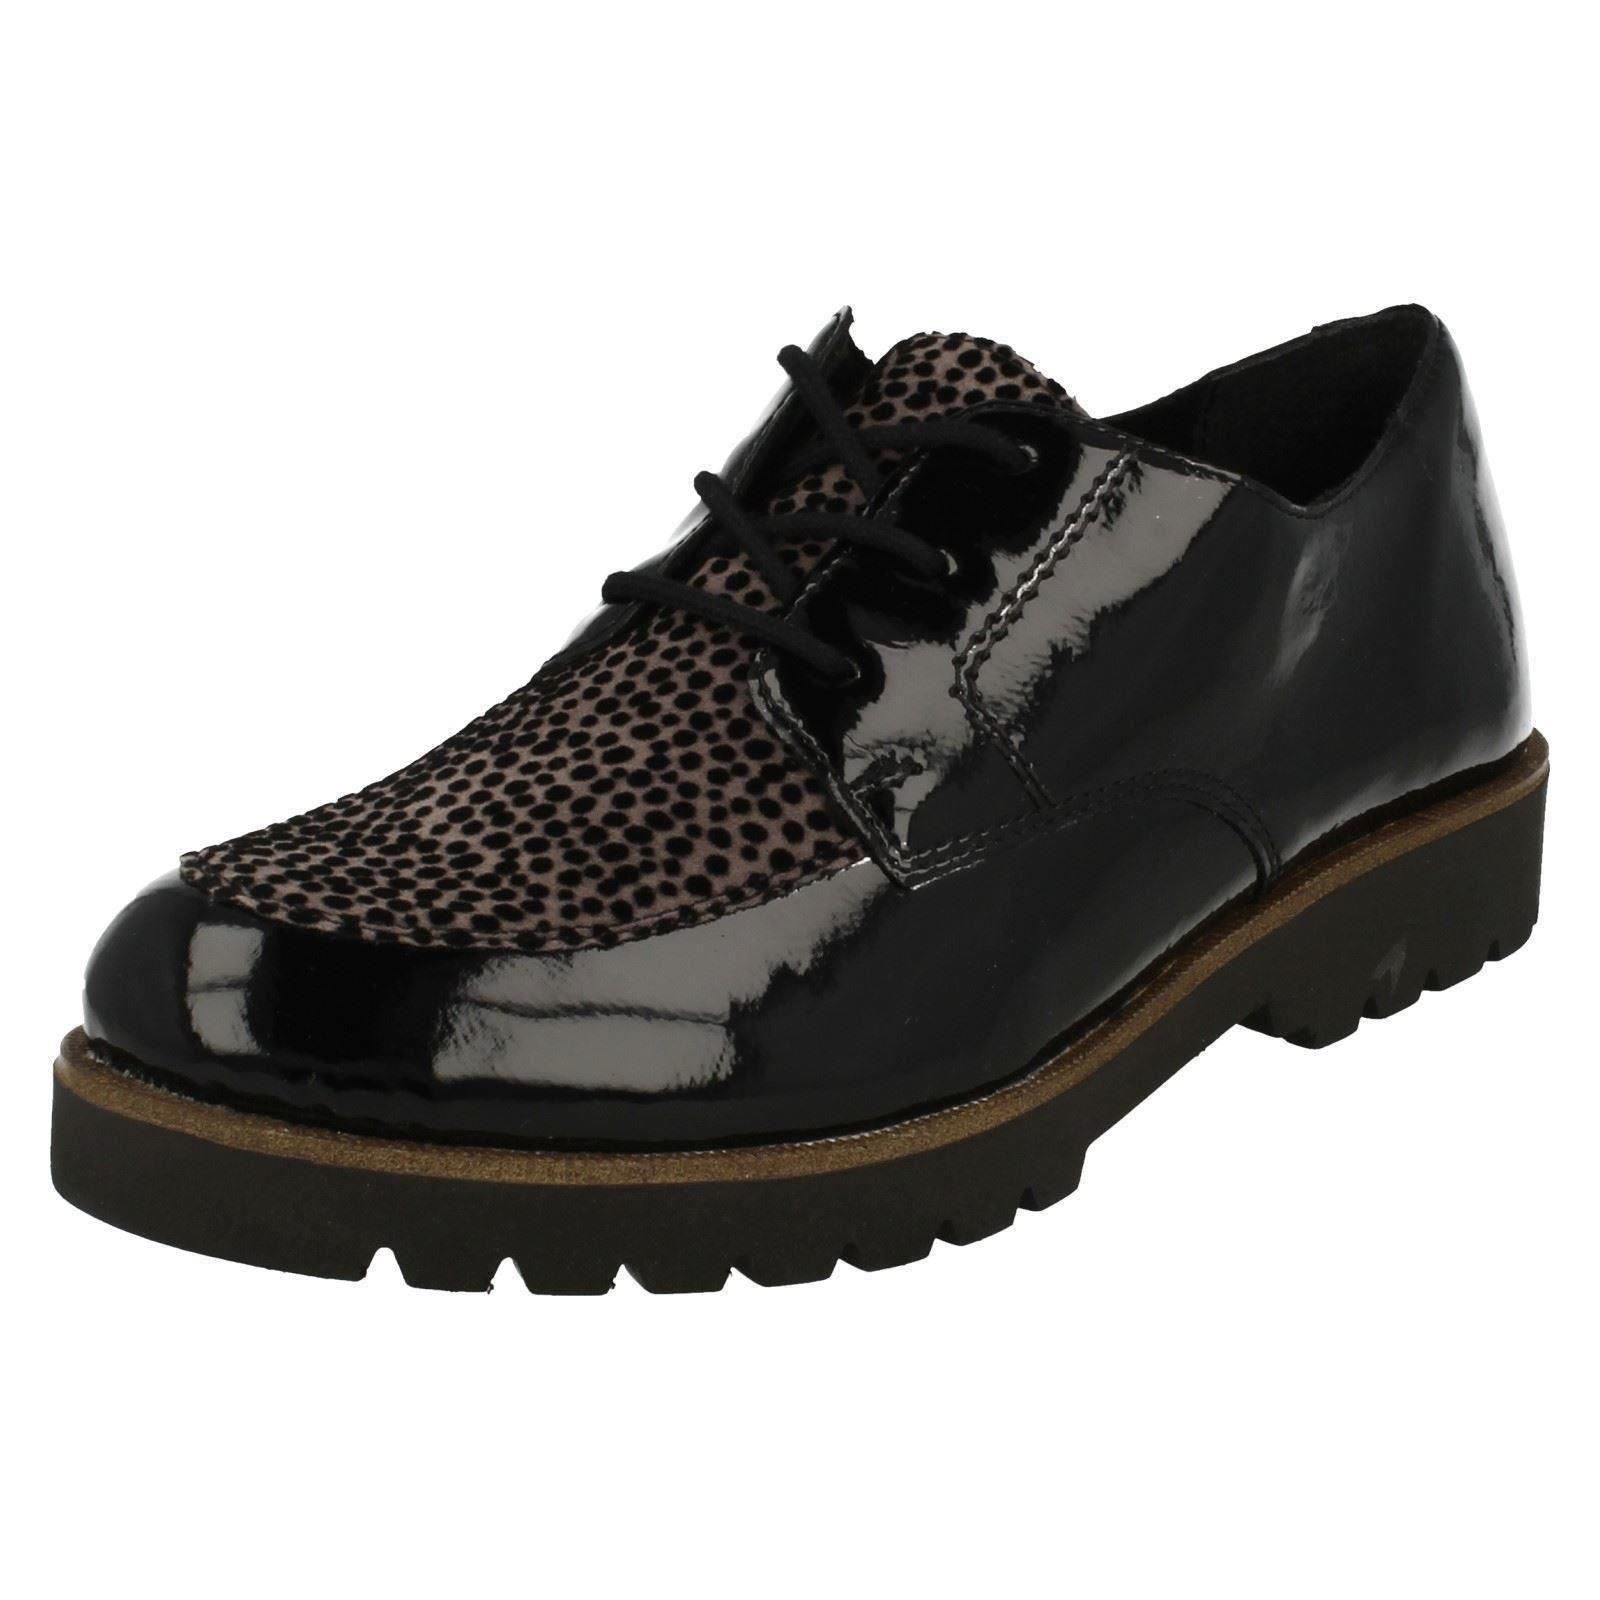 Combination Casual Flat Remonte Style Shoes Ladies Black D0103 05fPqZE